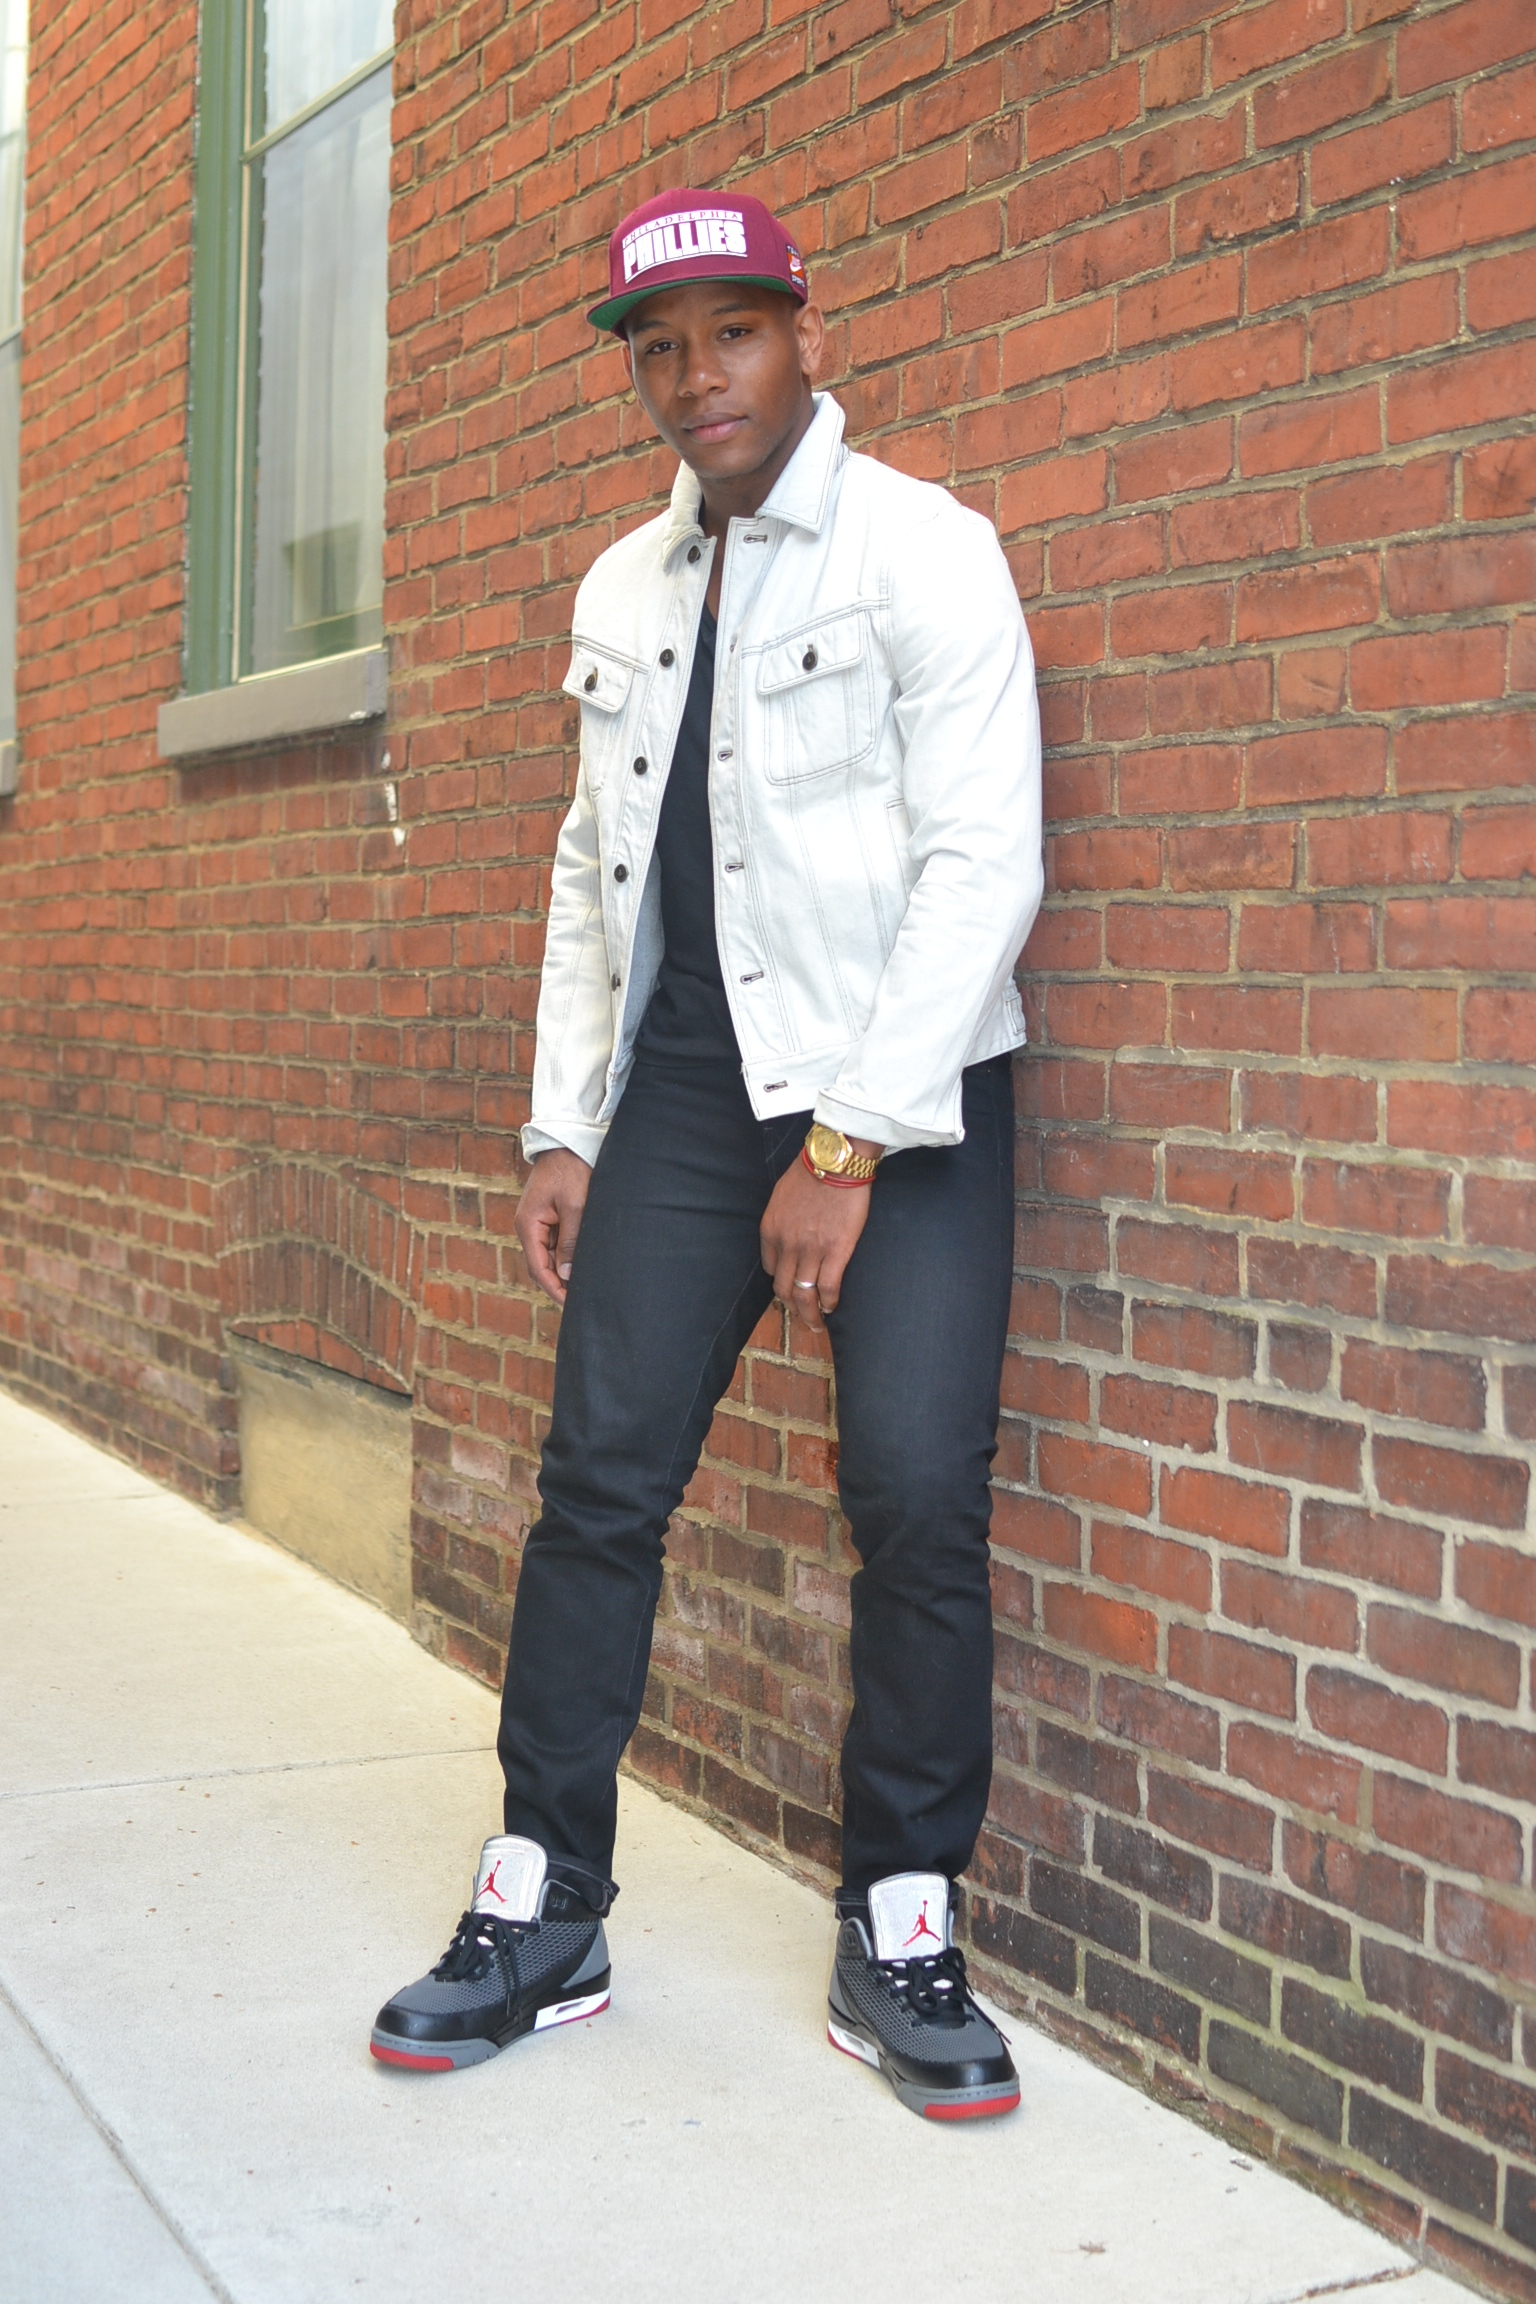 Sabir Peele in Onassis Clothing Bleached Denim Jacket